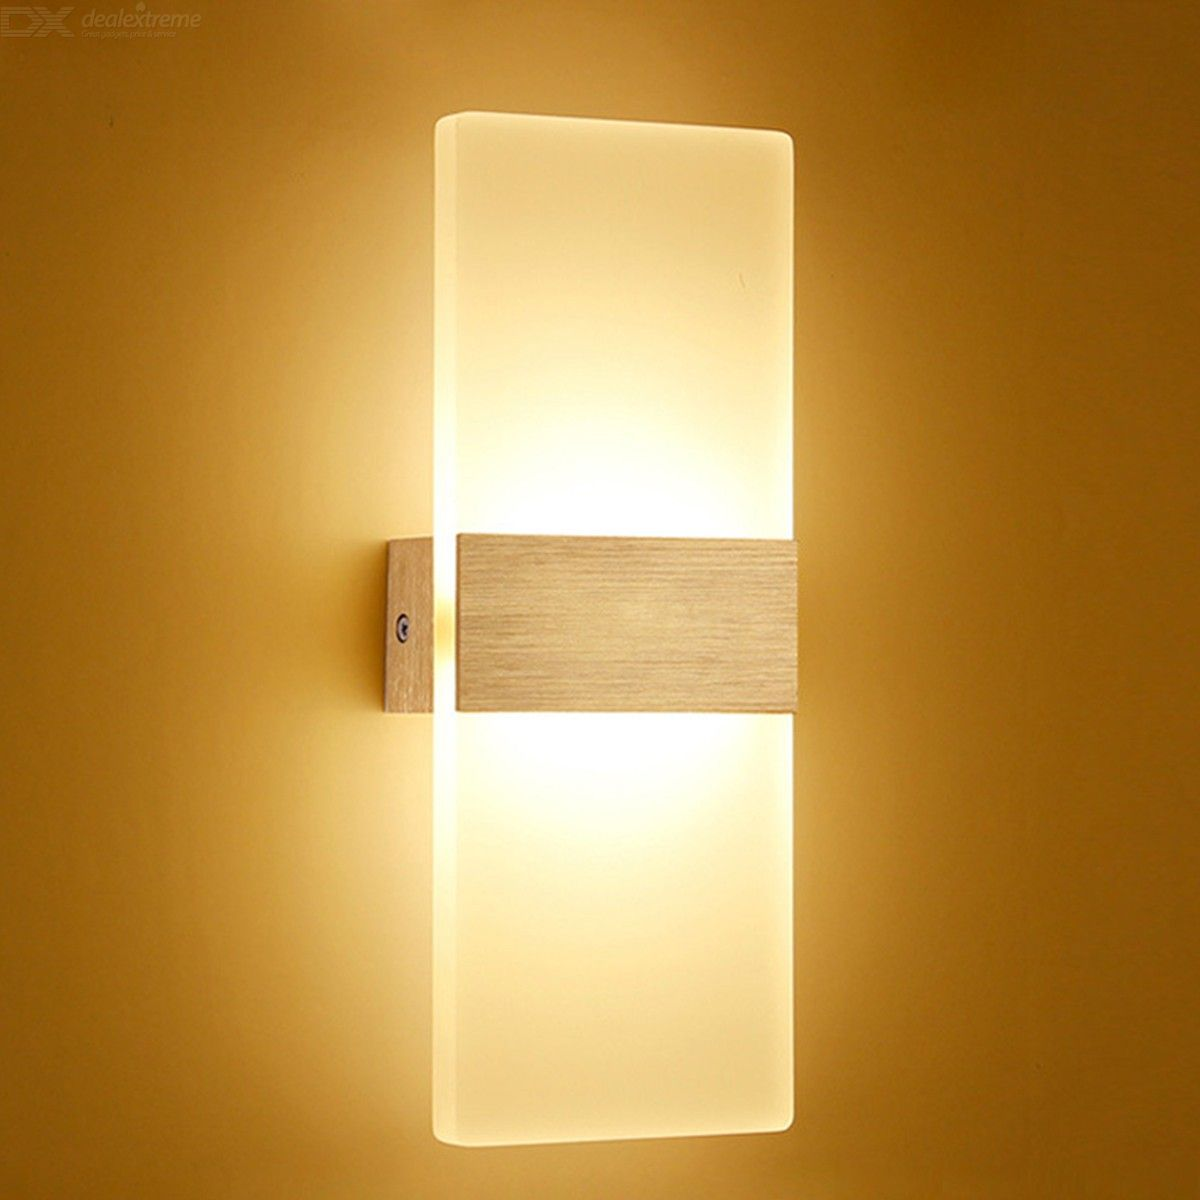 Modern Wall Sconce 12W Aluminum Wall Mounted Light For Pathway Porch Hallway